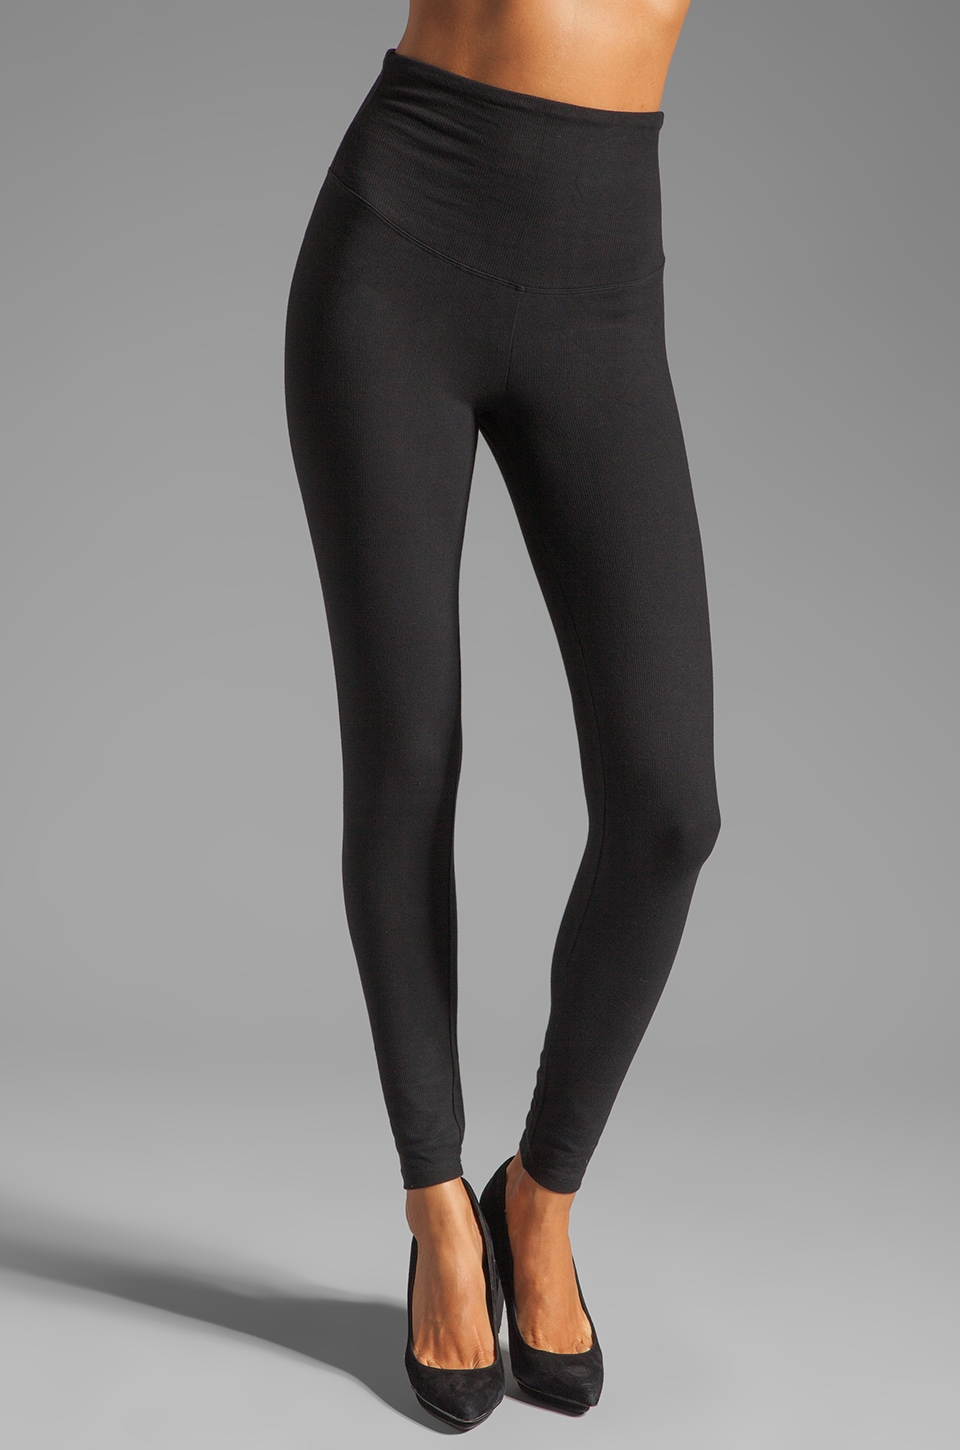 Yummie by Heather Thomson Rhiannon Compact Cotton Rib Legging in Black